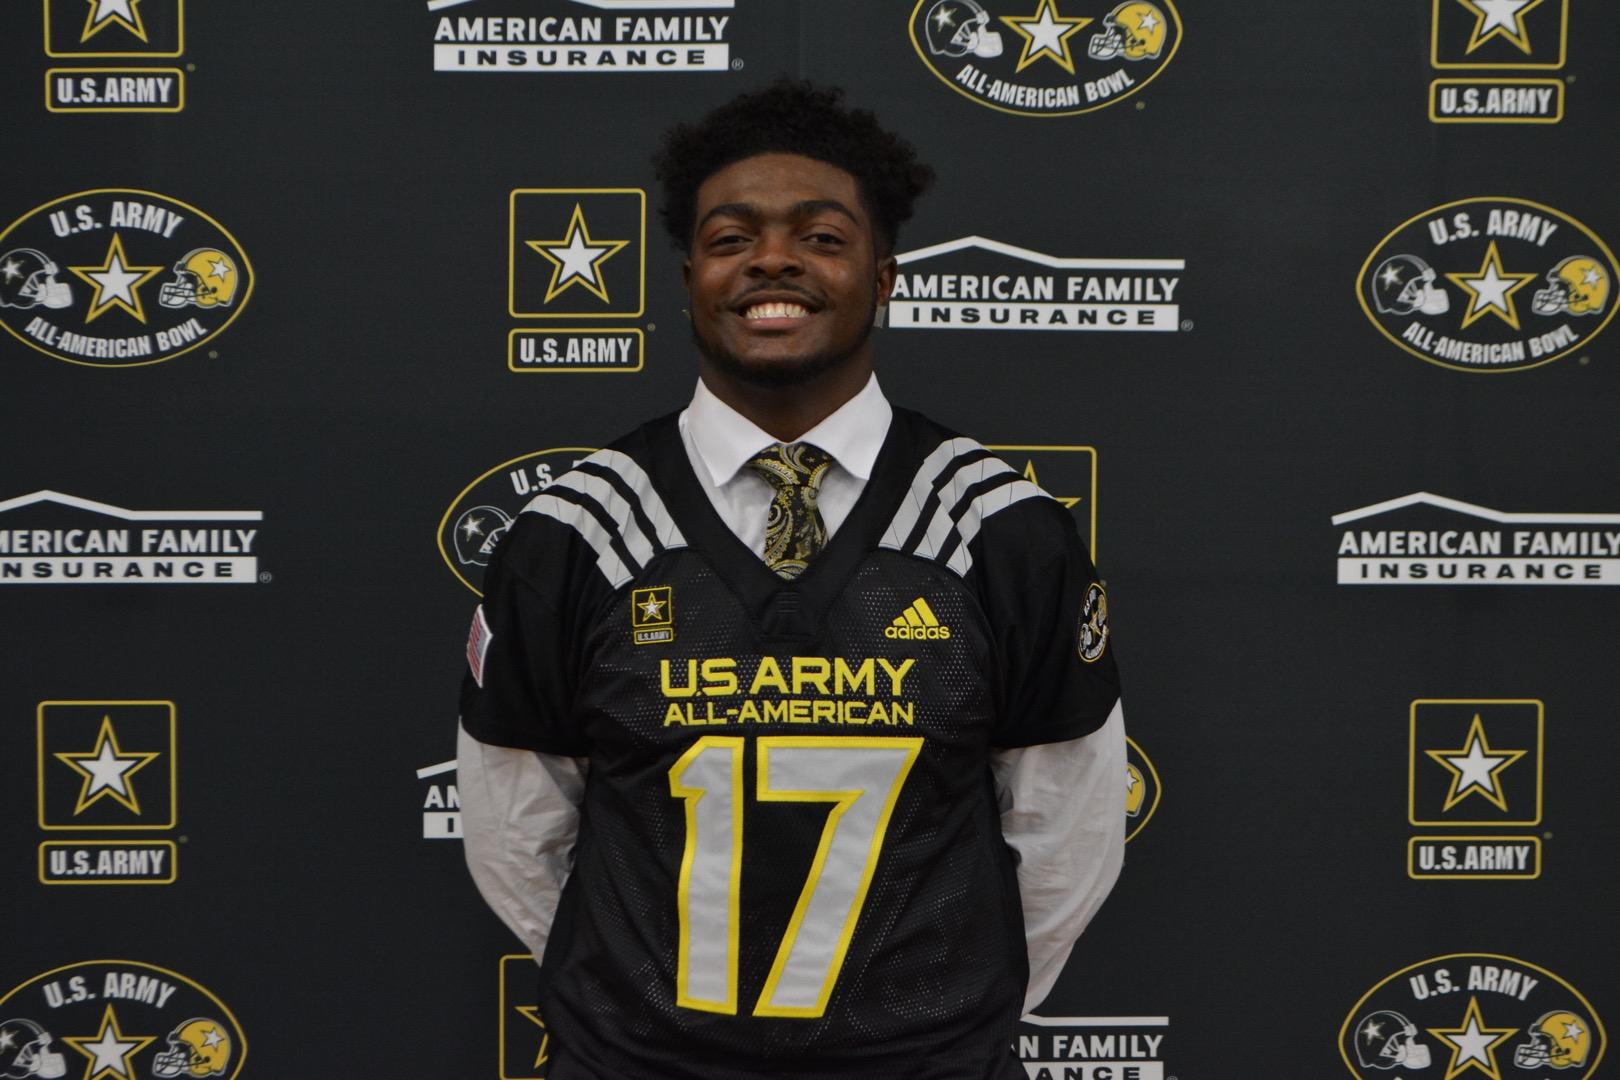 Deron Irving-Bey (Photo: Army All-American Bowl)